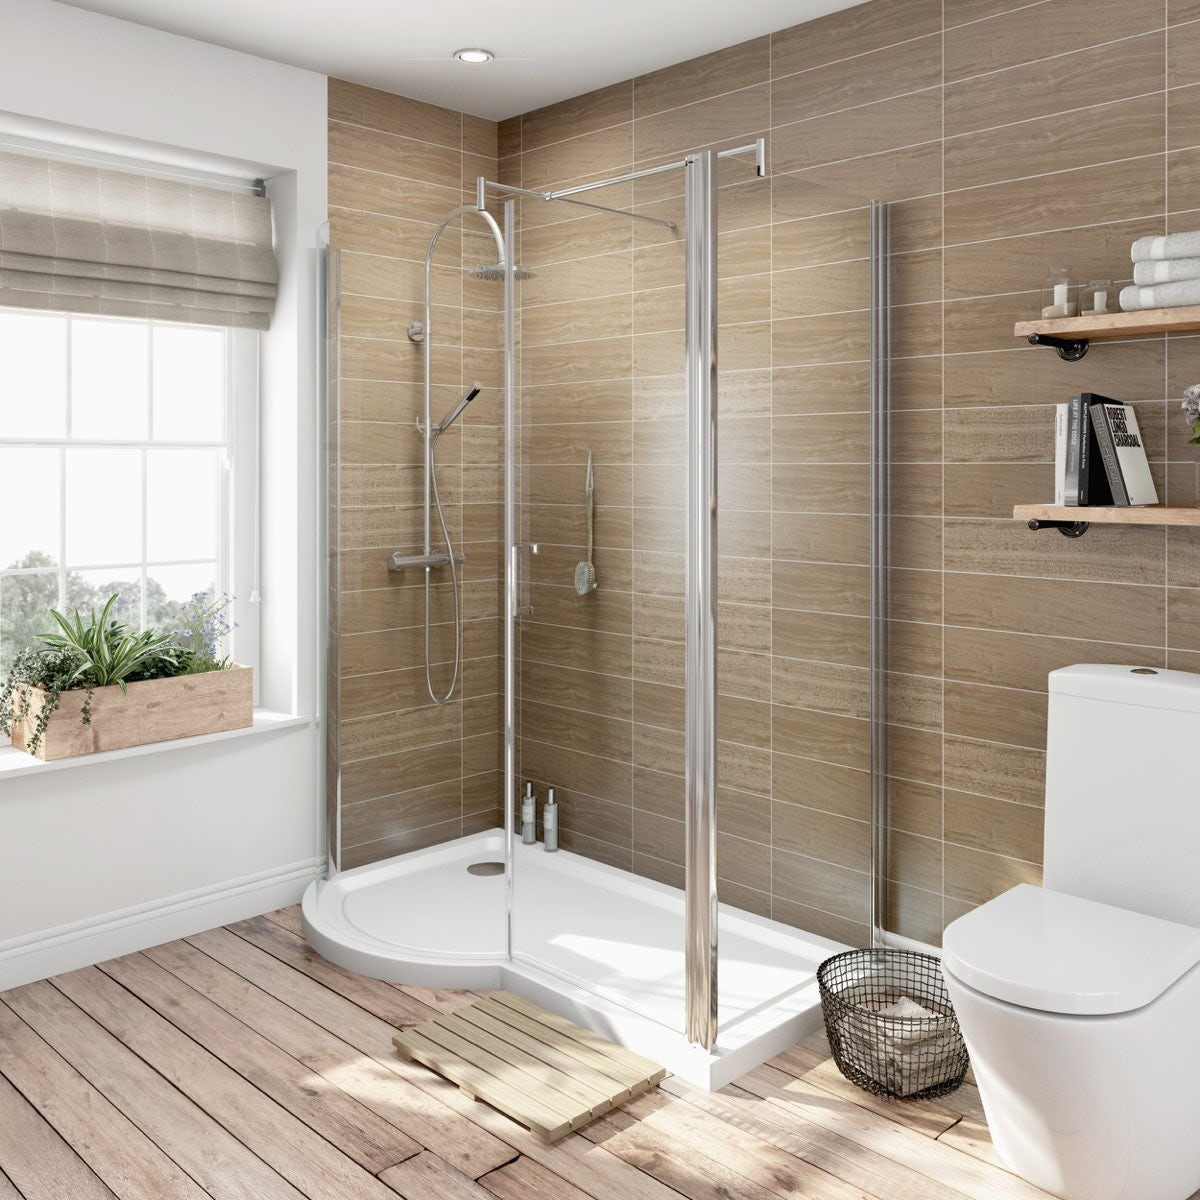 Orchard 6mm Left Handed P Shaped Shower Enclosure With Tray 1500 X 700 Victoriaplum Com